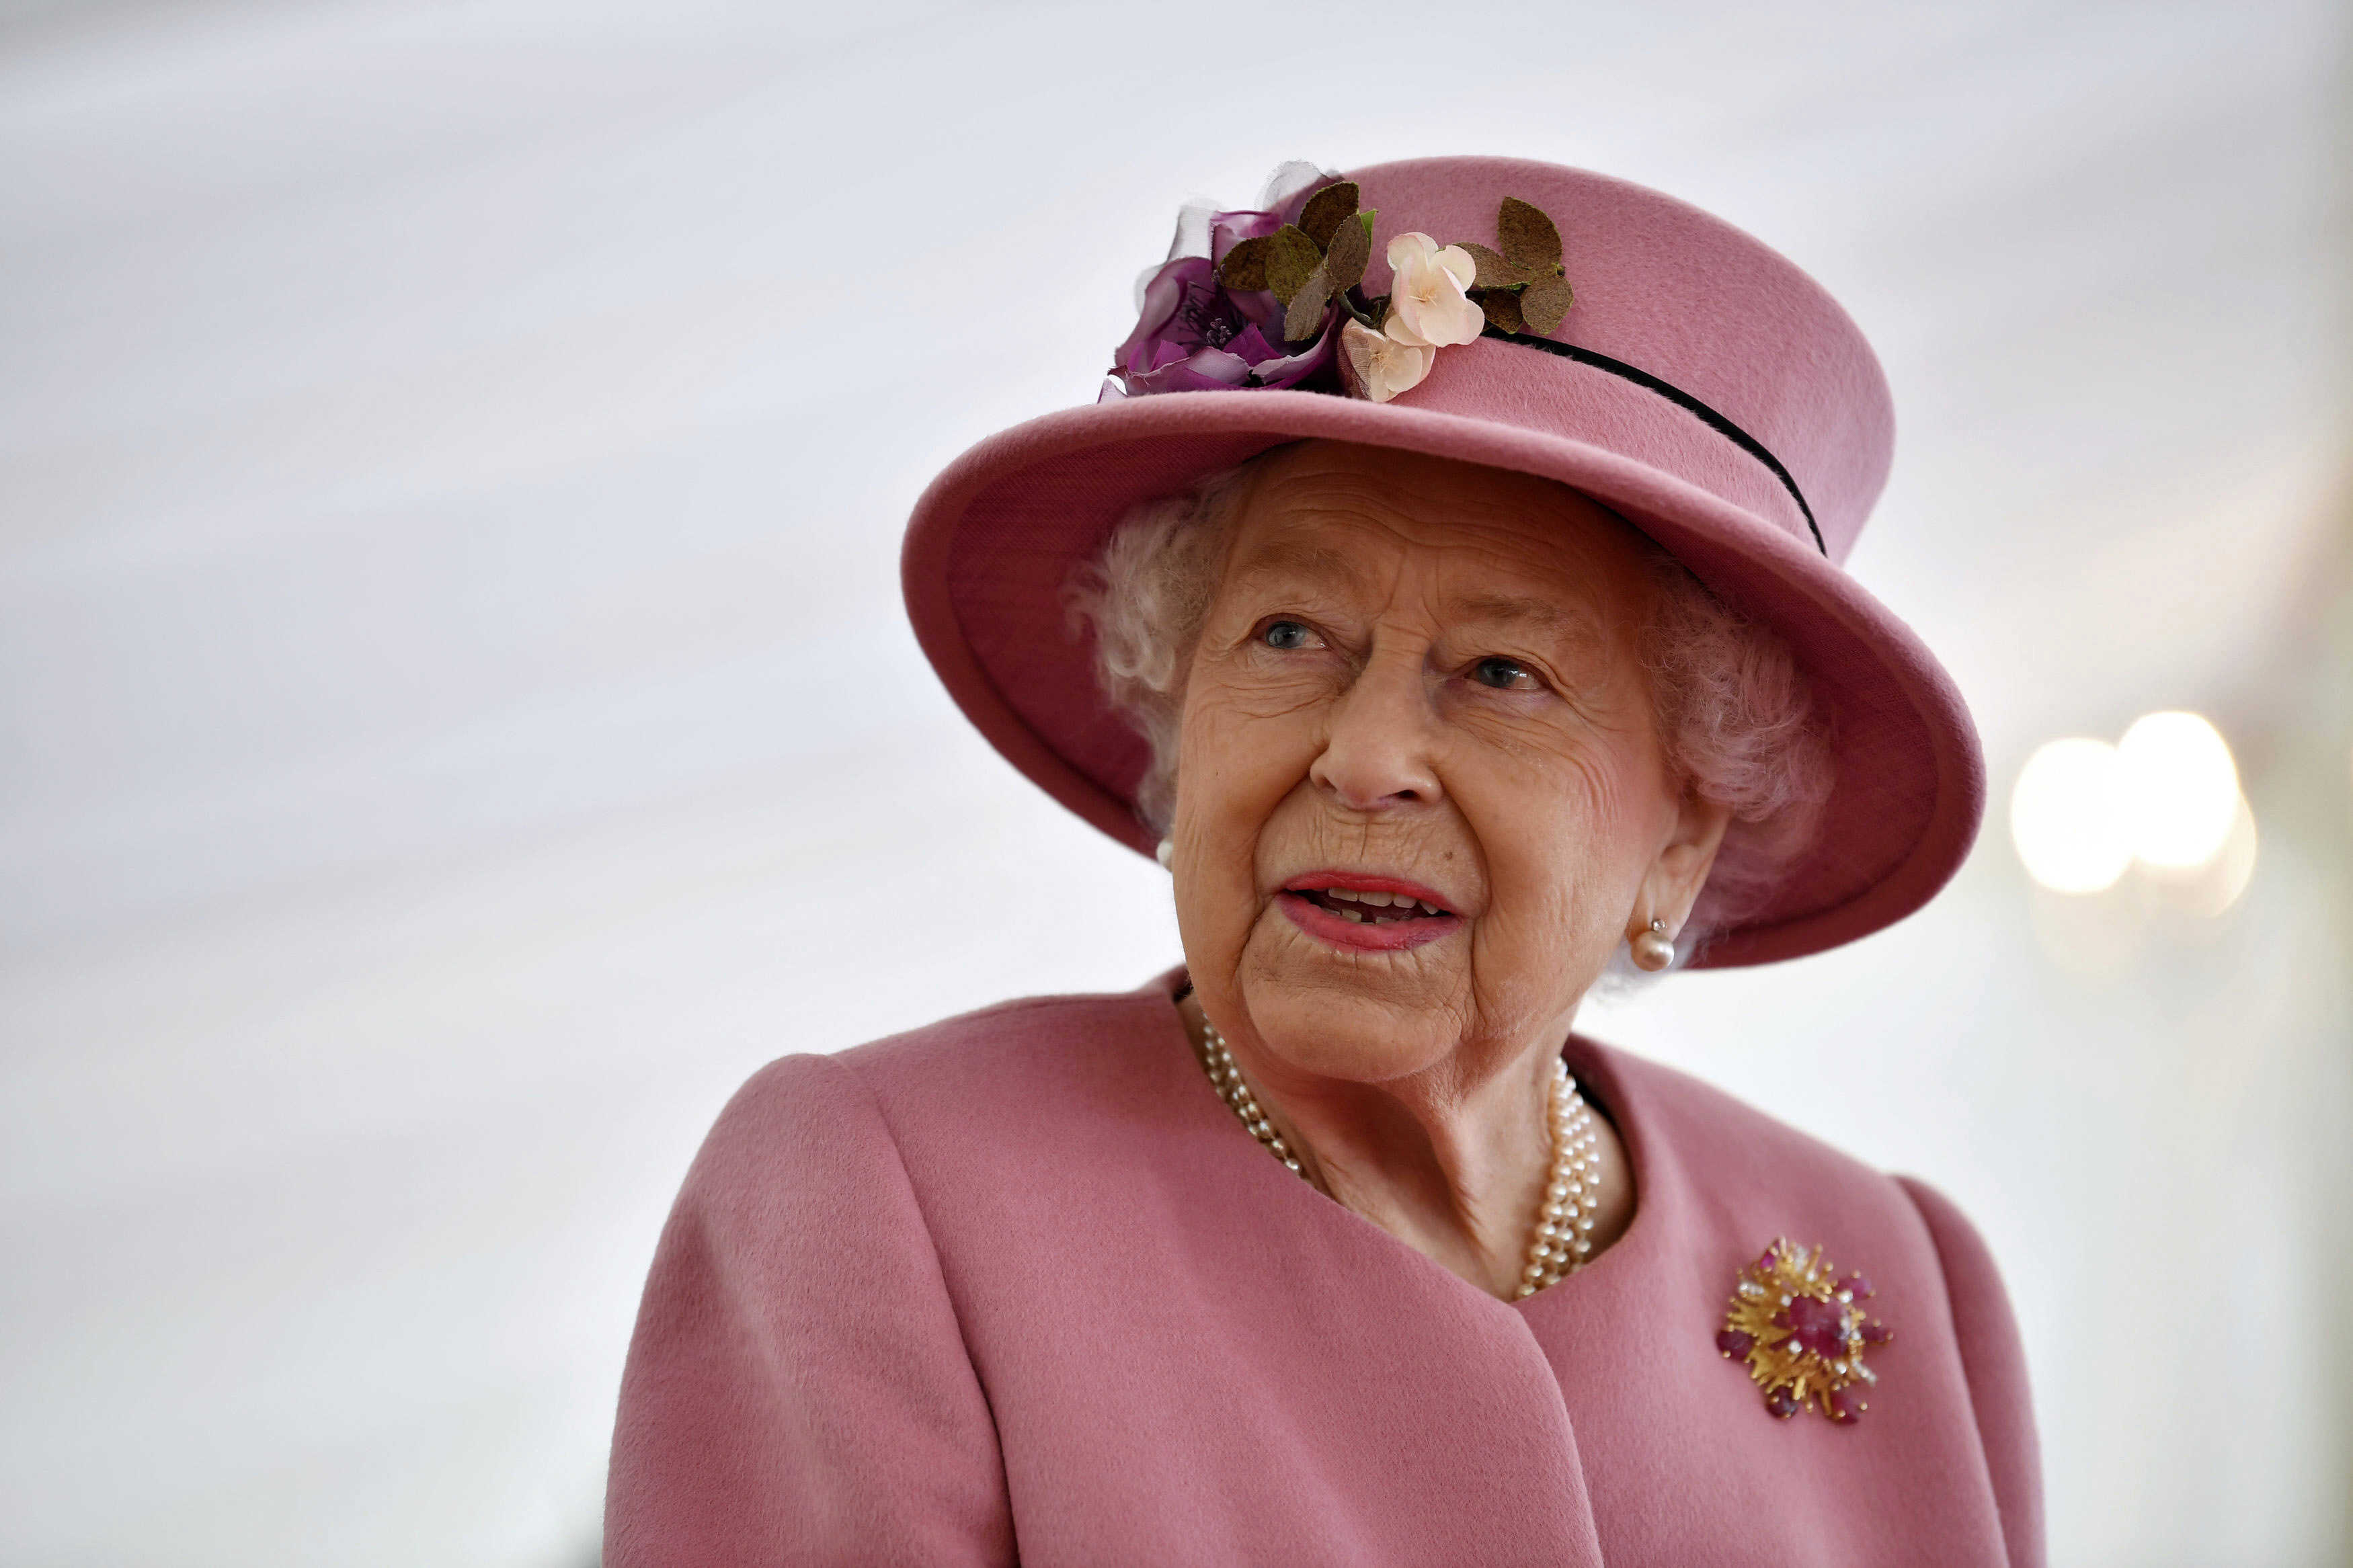 Britain's Queen Elizabeth II visits the Defence Science and Technology Laboratory (DSTL) at Porton Down, England, Thursday Oct. 15, 2020, to view the Energetics Enclosure and display of weaponry and tactics used in counter intelligence.